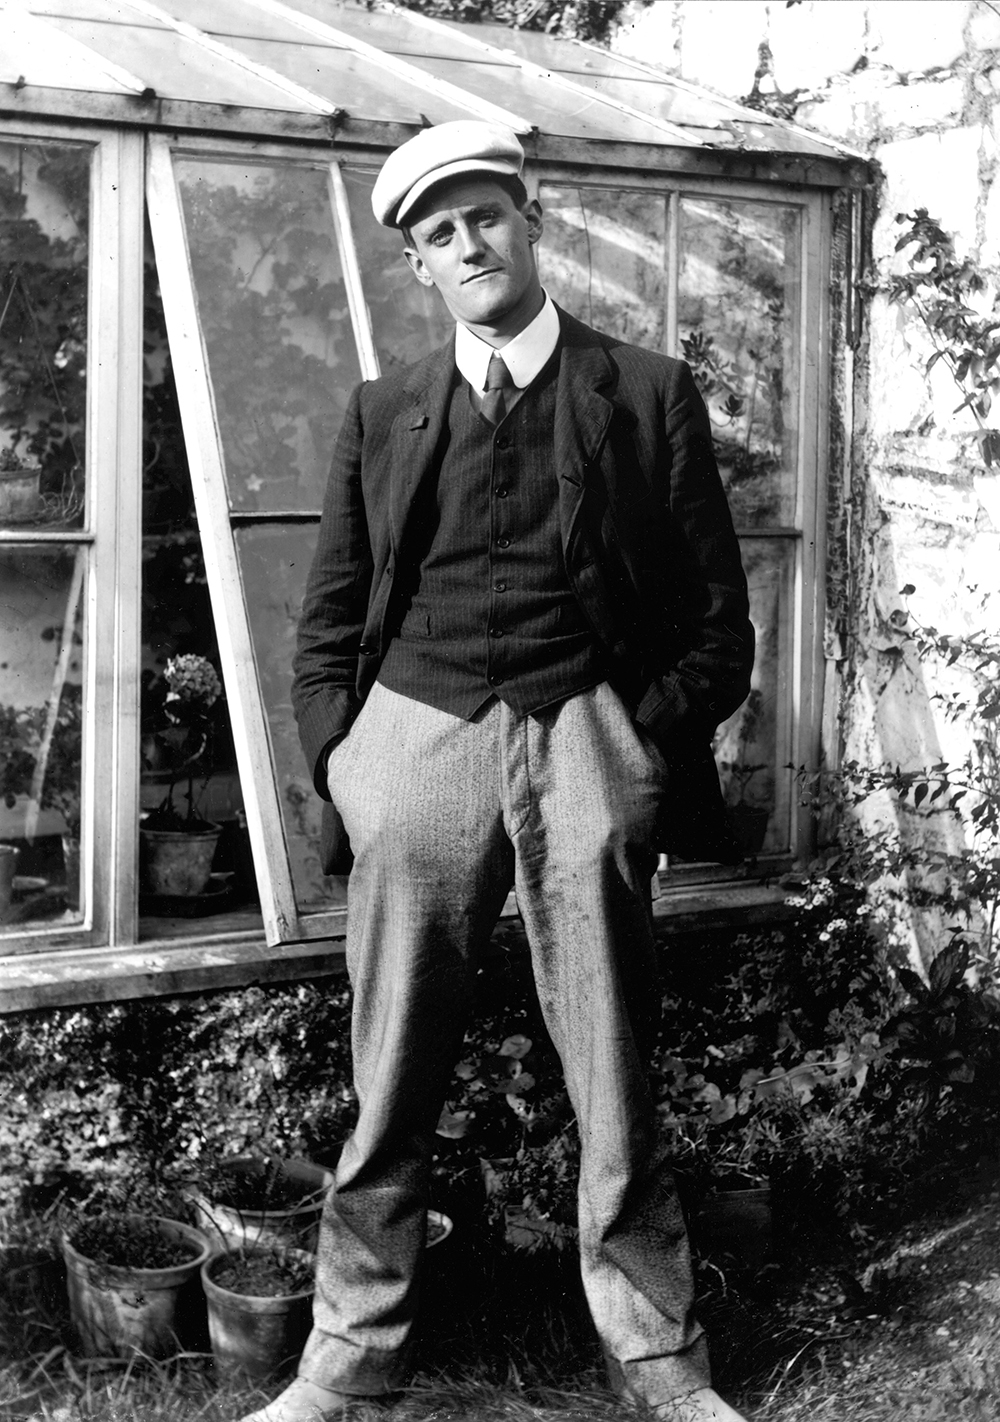 James Joyce, pictured in 1904